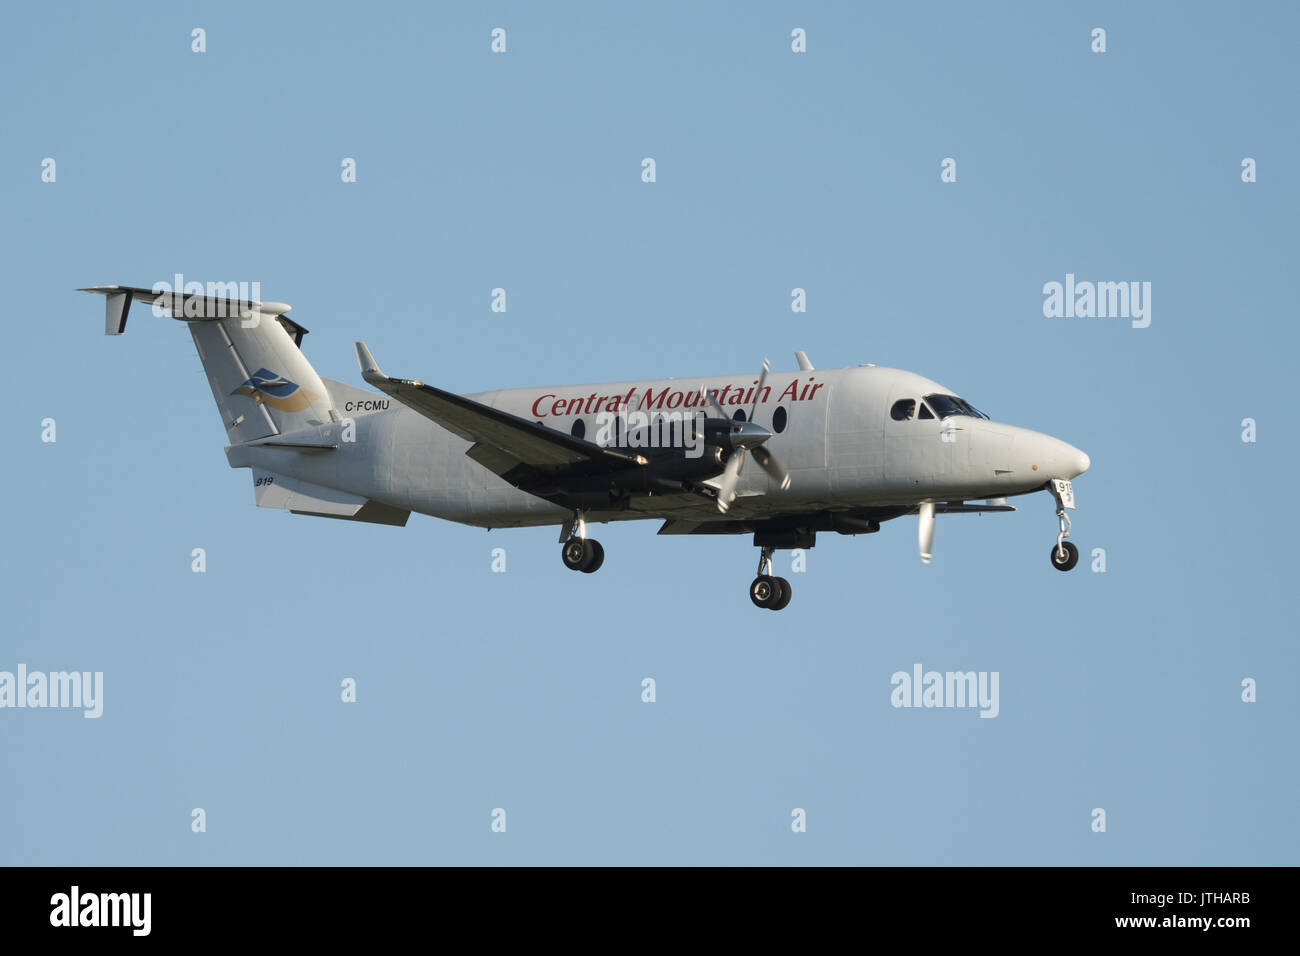 June 10, 2017 - Richmond, British Columbia, Canada - A Central Mountain Air Beech 1900D (C-FCMU) airplane on final approach for landing at Vancouver International Airport. (Credit Image: © Bayne Stanley via ZUMA Wire) - Stock Image